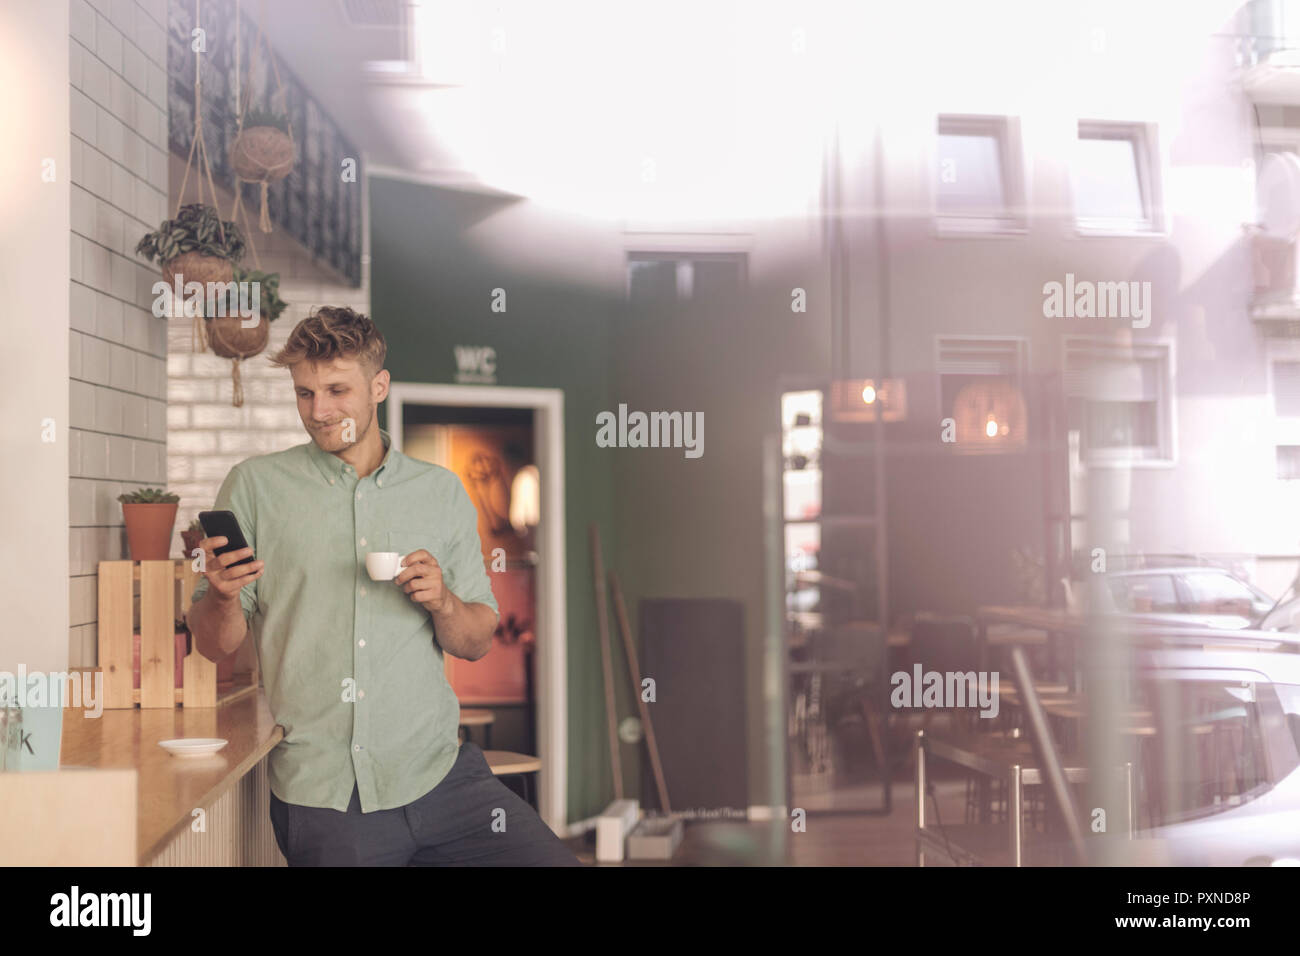 Young business owner drinking coffee, checking smartphone - Stock Image